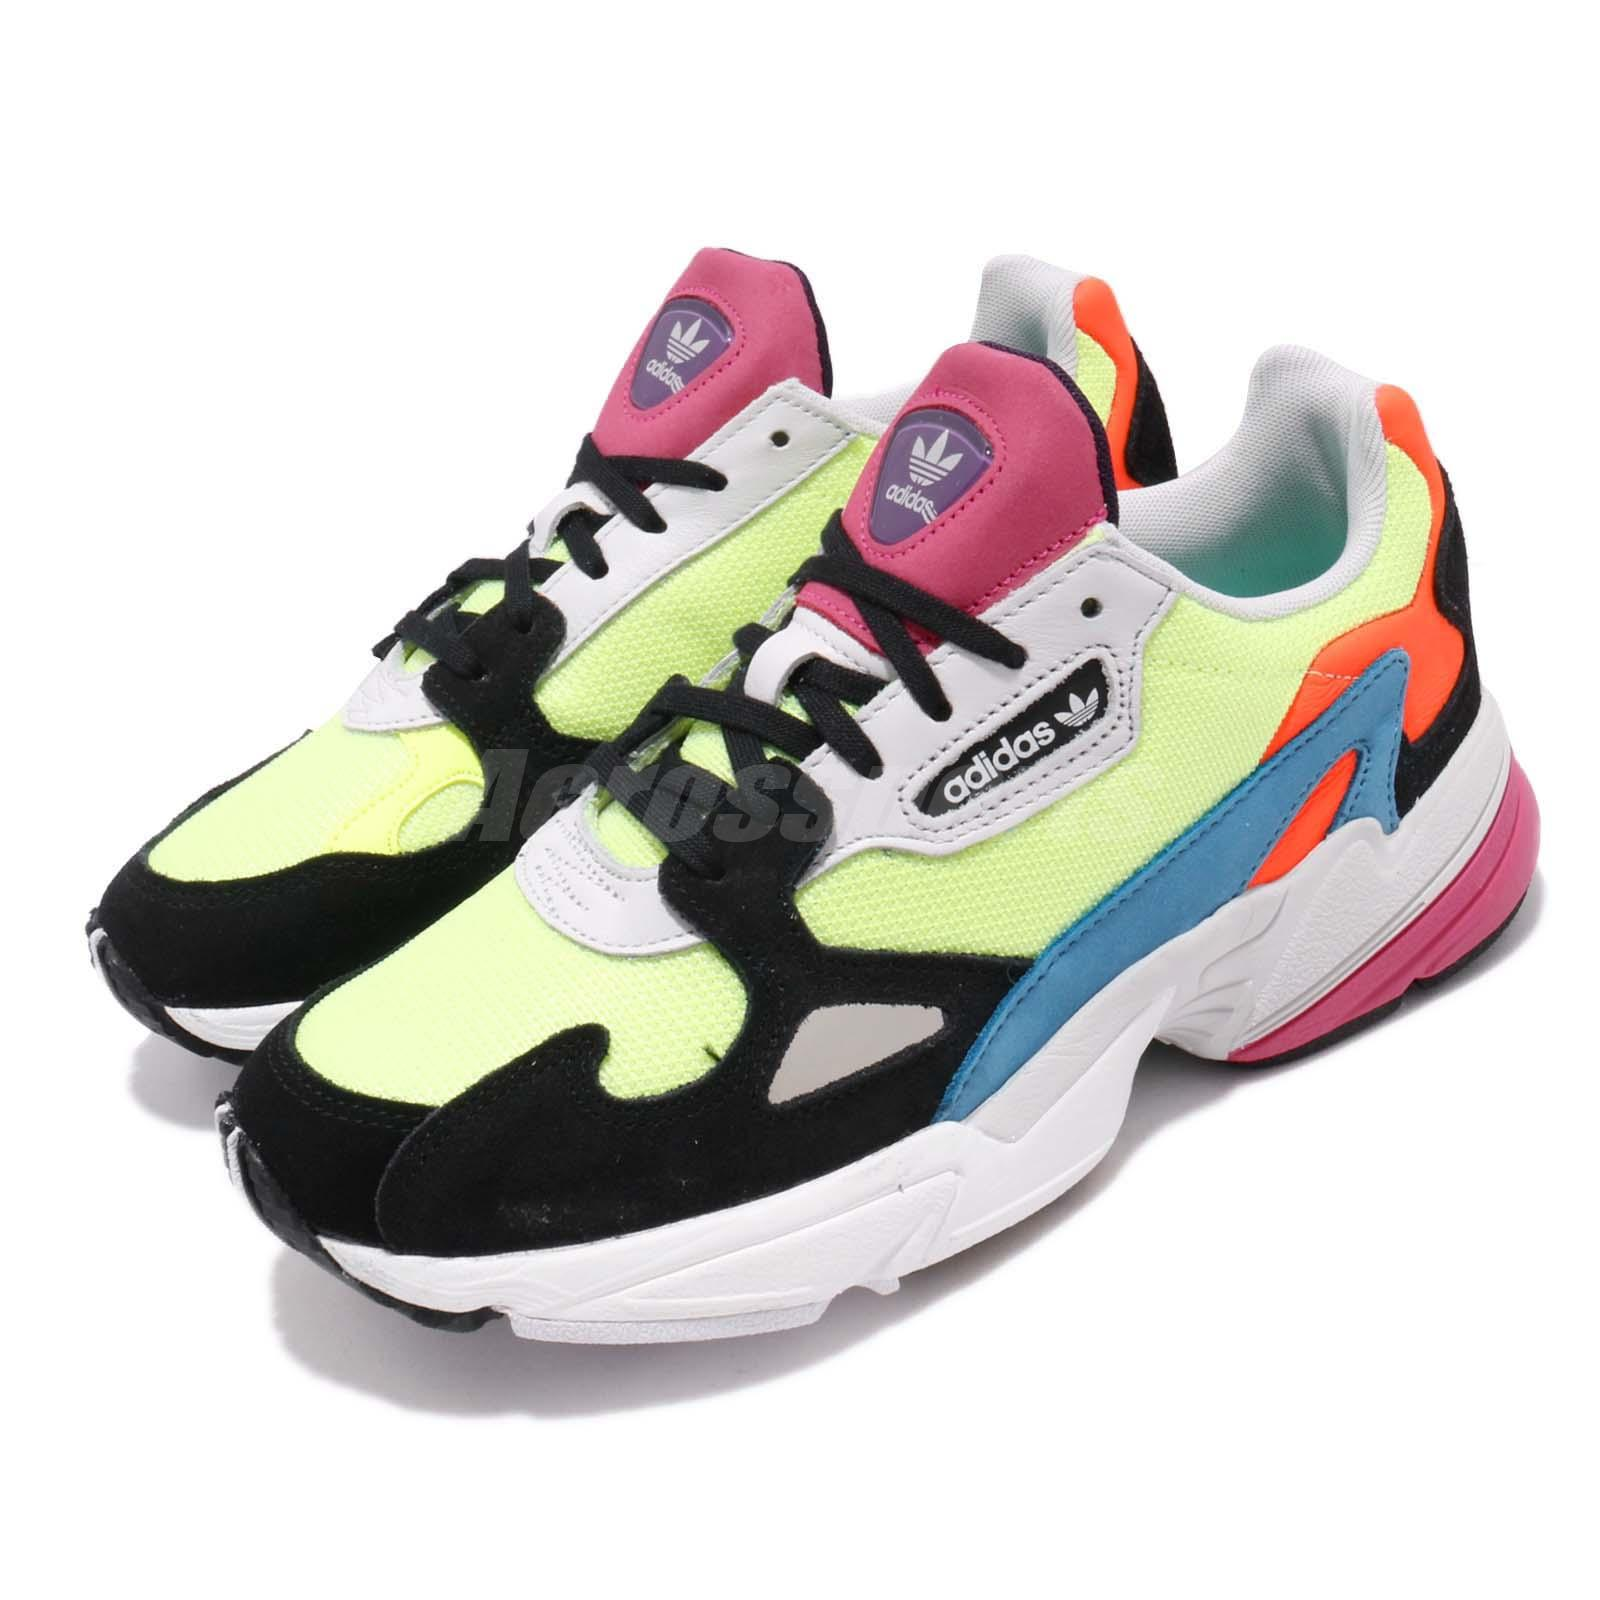 Details about adidas Originals Falcon W Yellow Black Multi-Color Women  Running Shoes CG6210